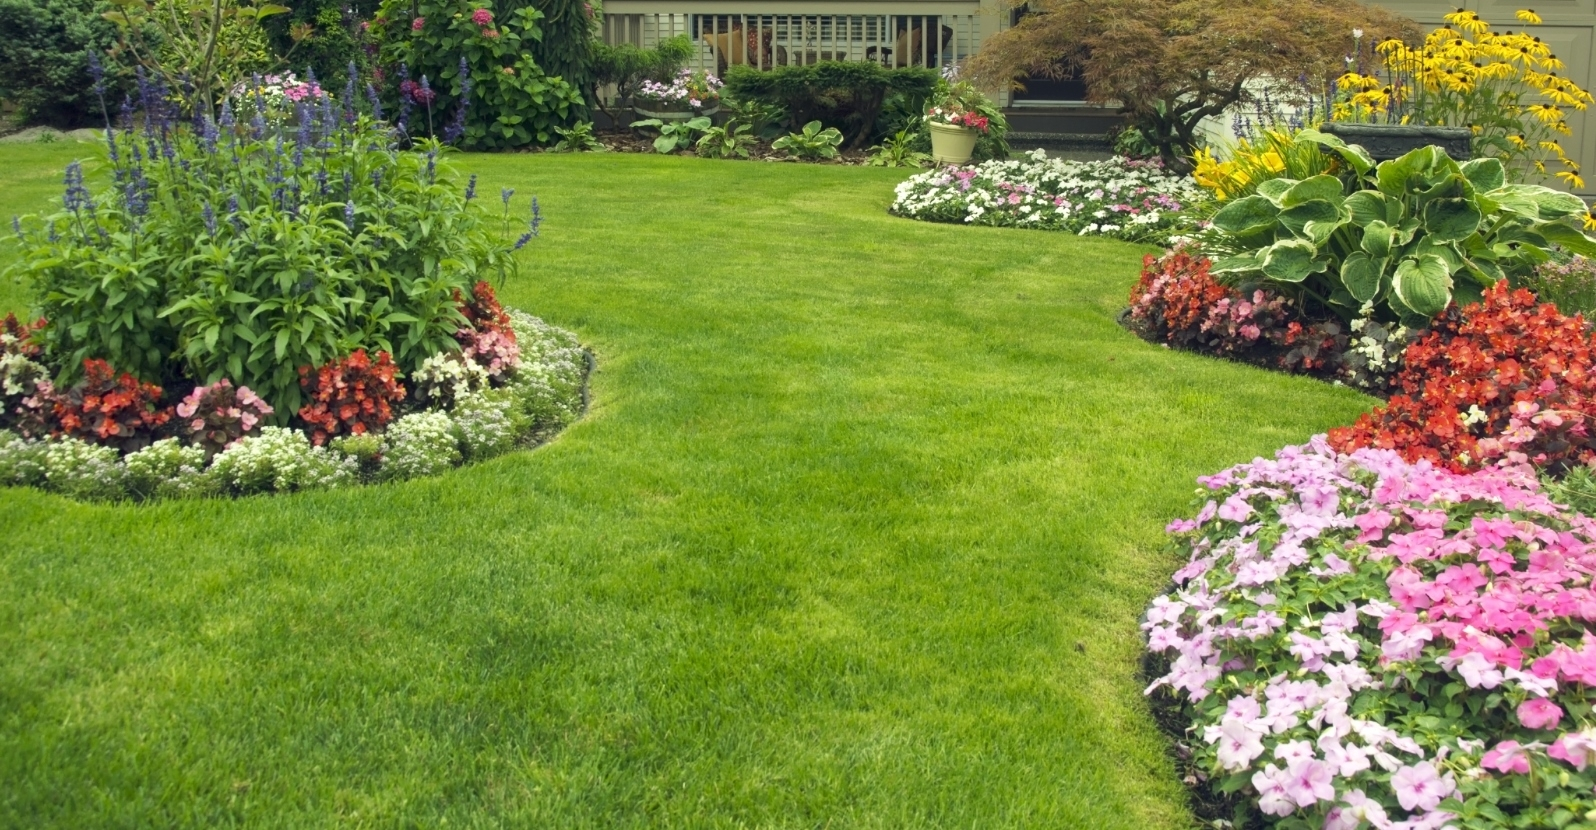 3 Simple Tips For A More Beautiful Lawn